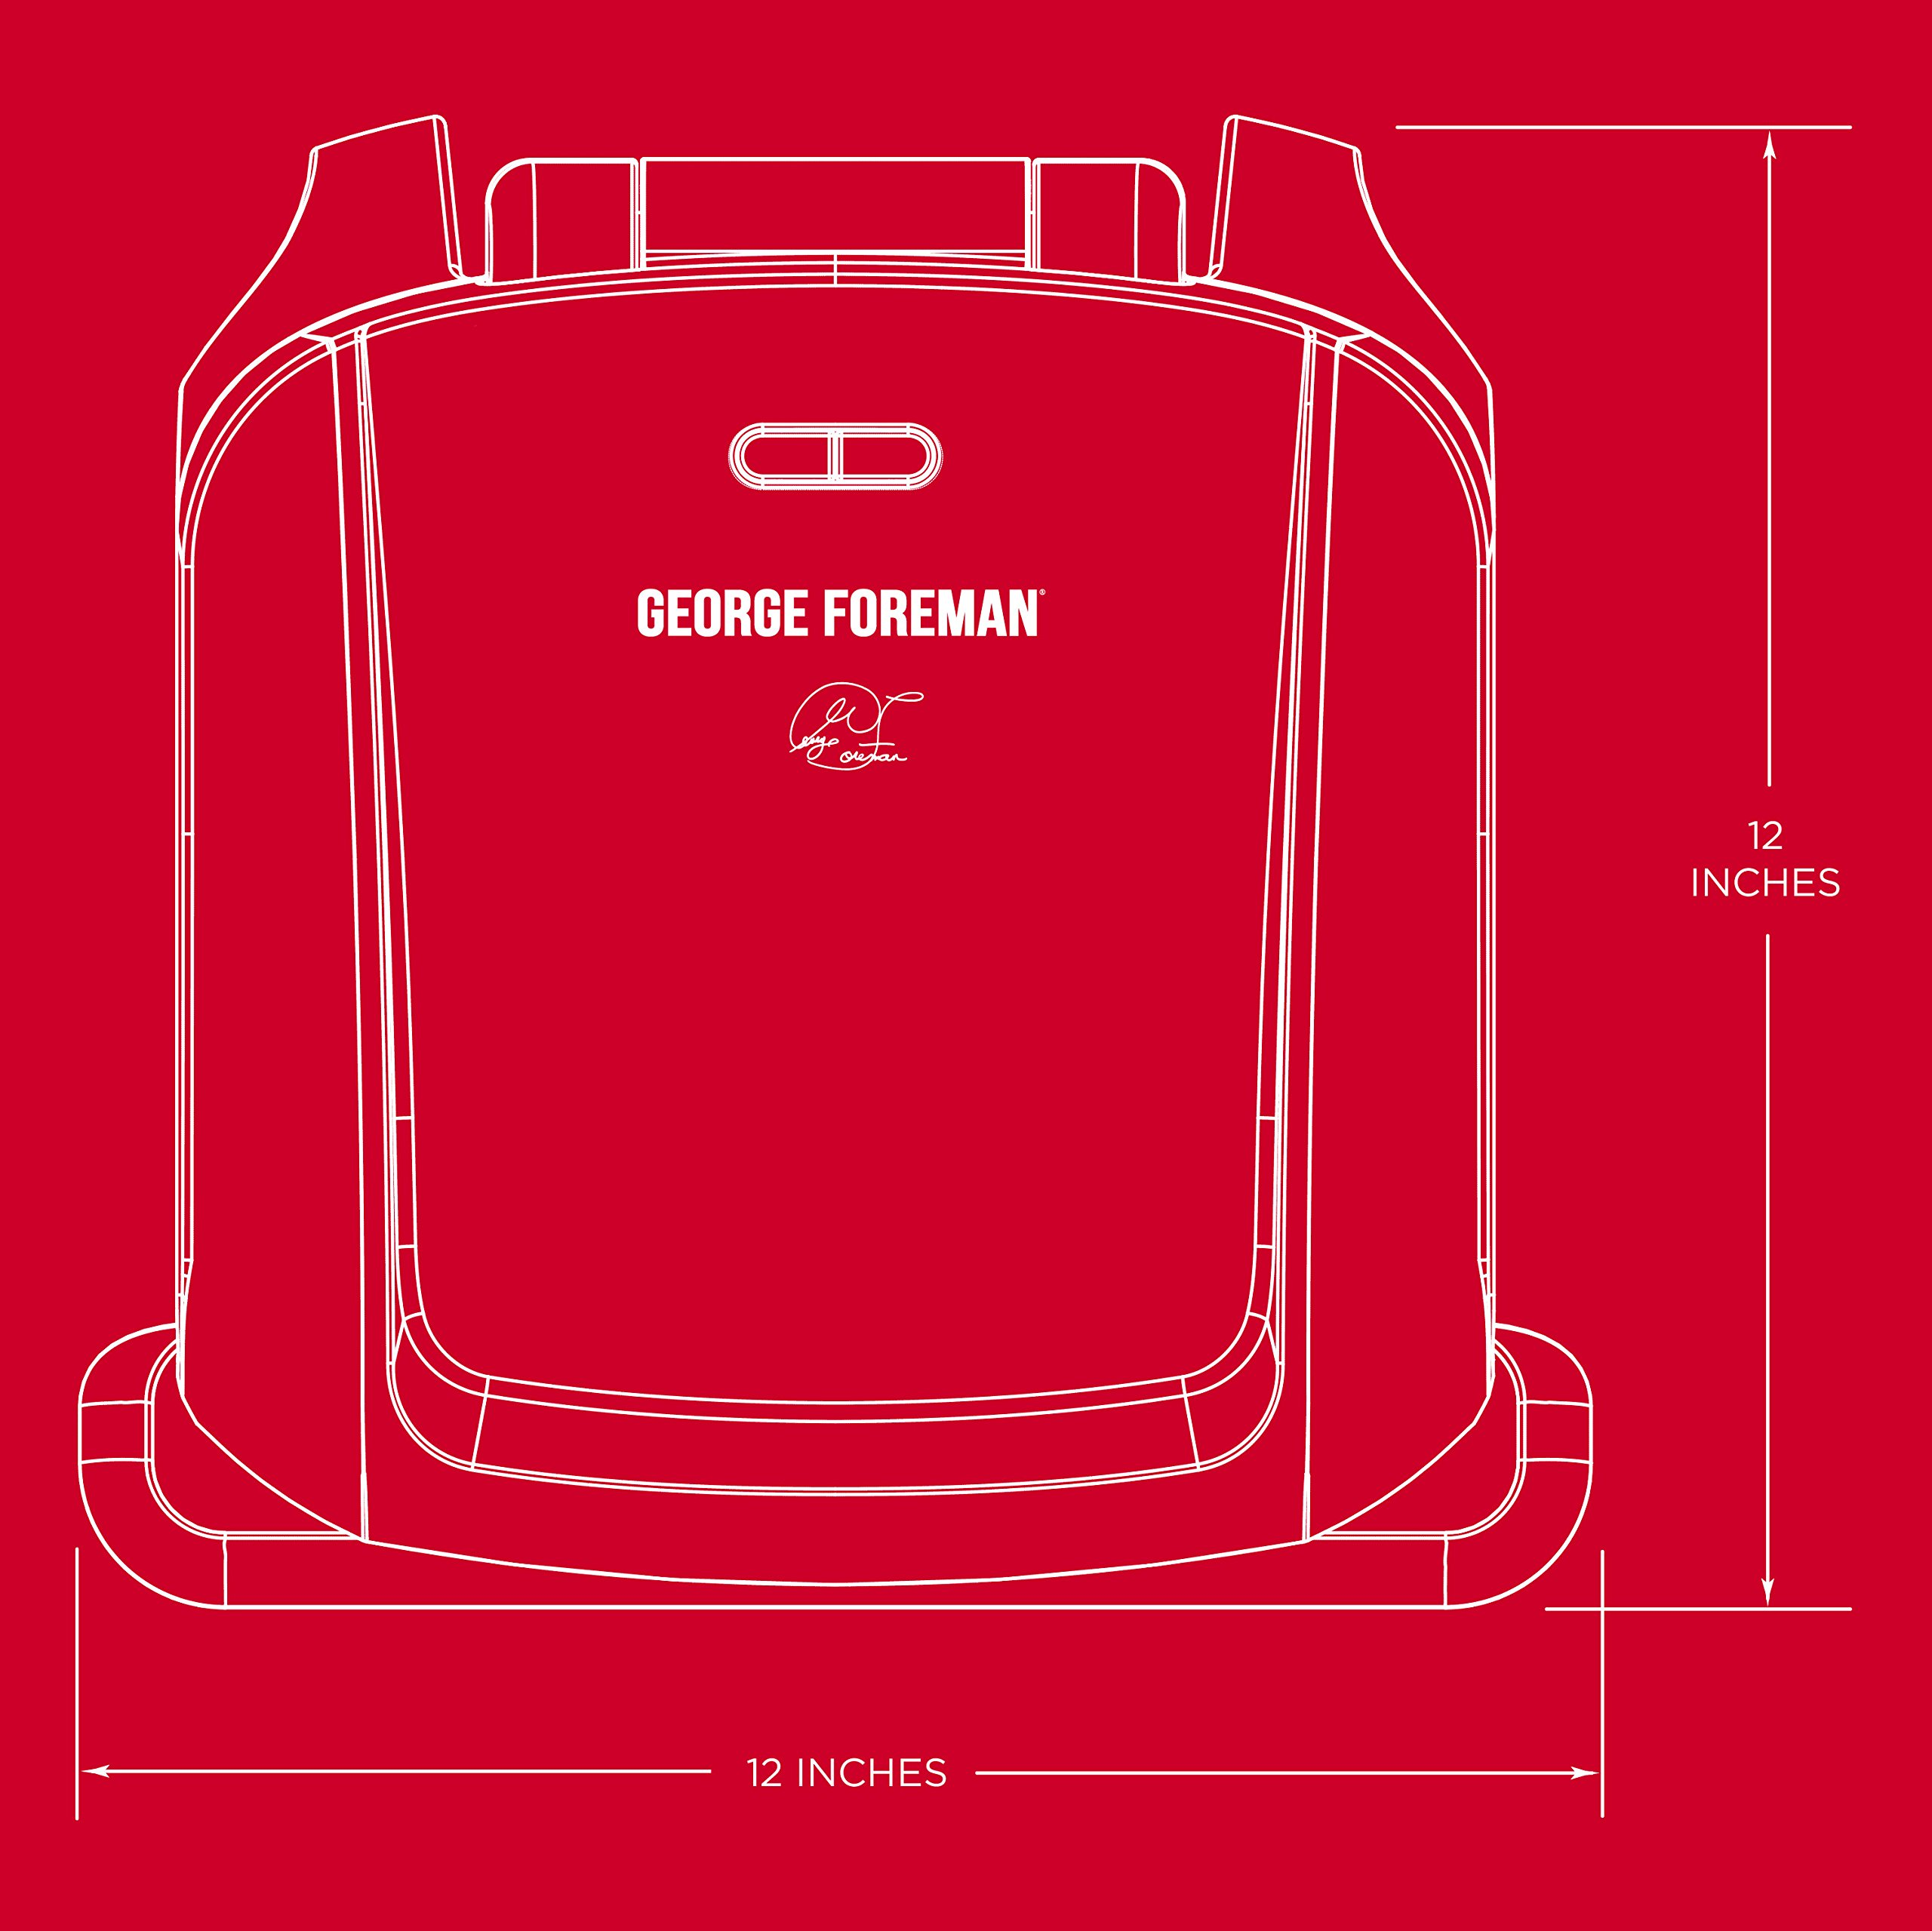 George Foreman 4-Serving Removable Plate Grill and Panini Press, Black, GRP1060B by George Foreman (Image #6)